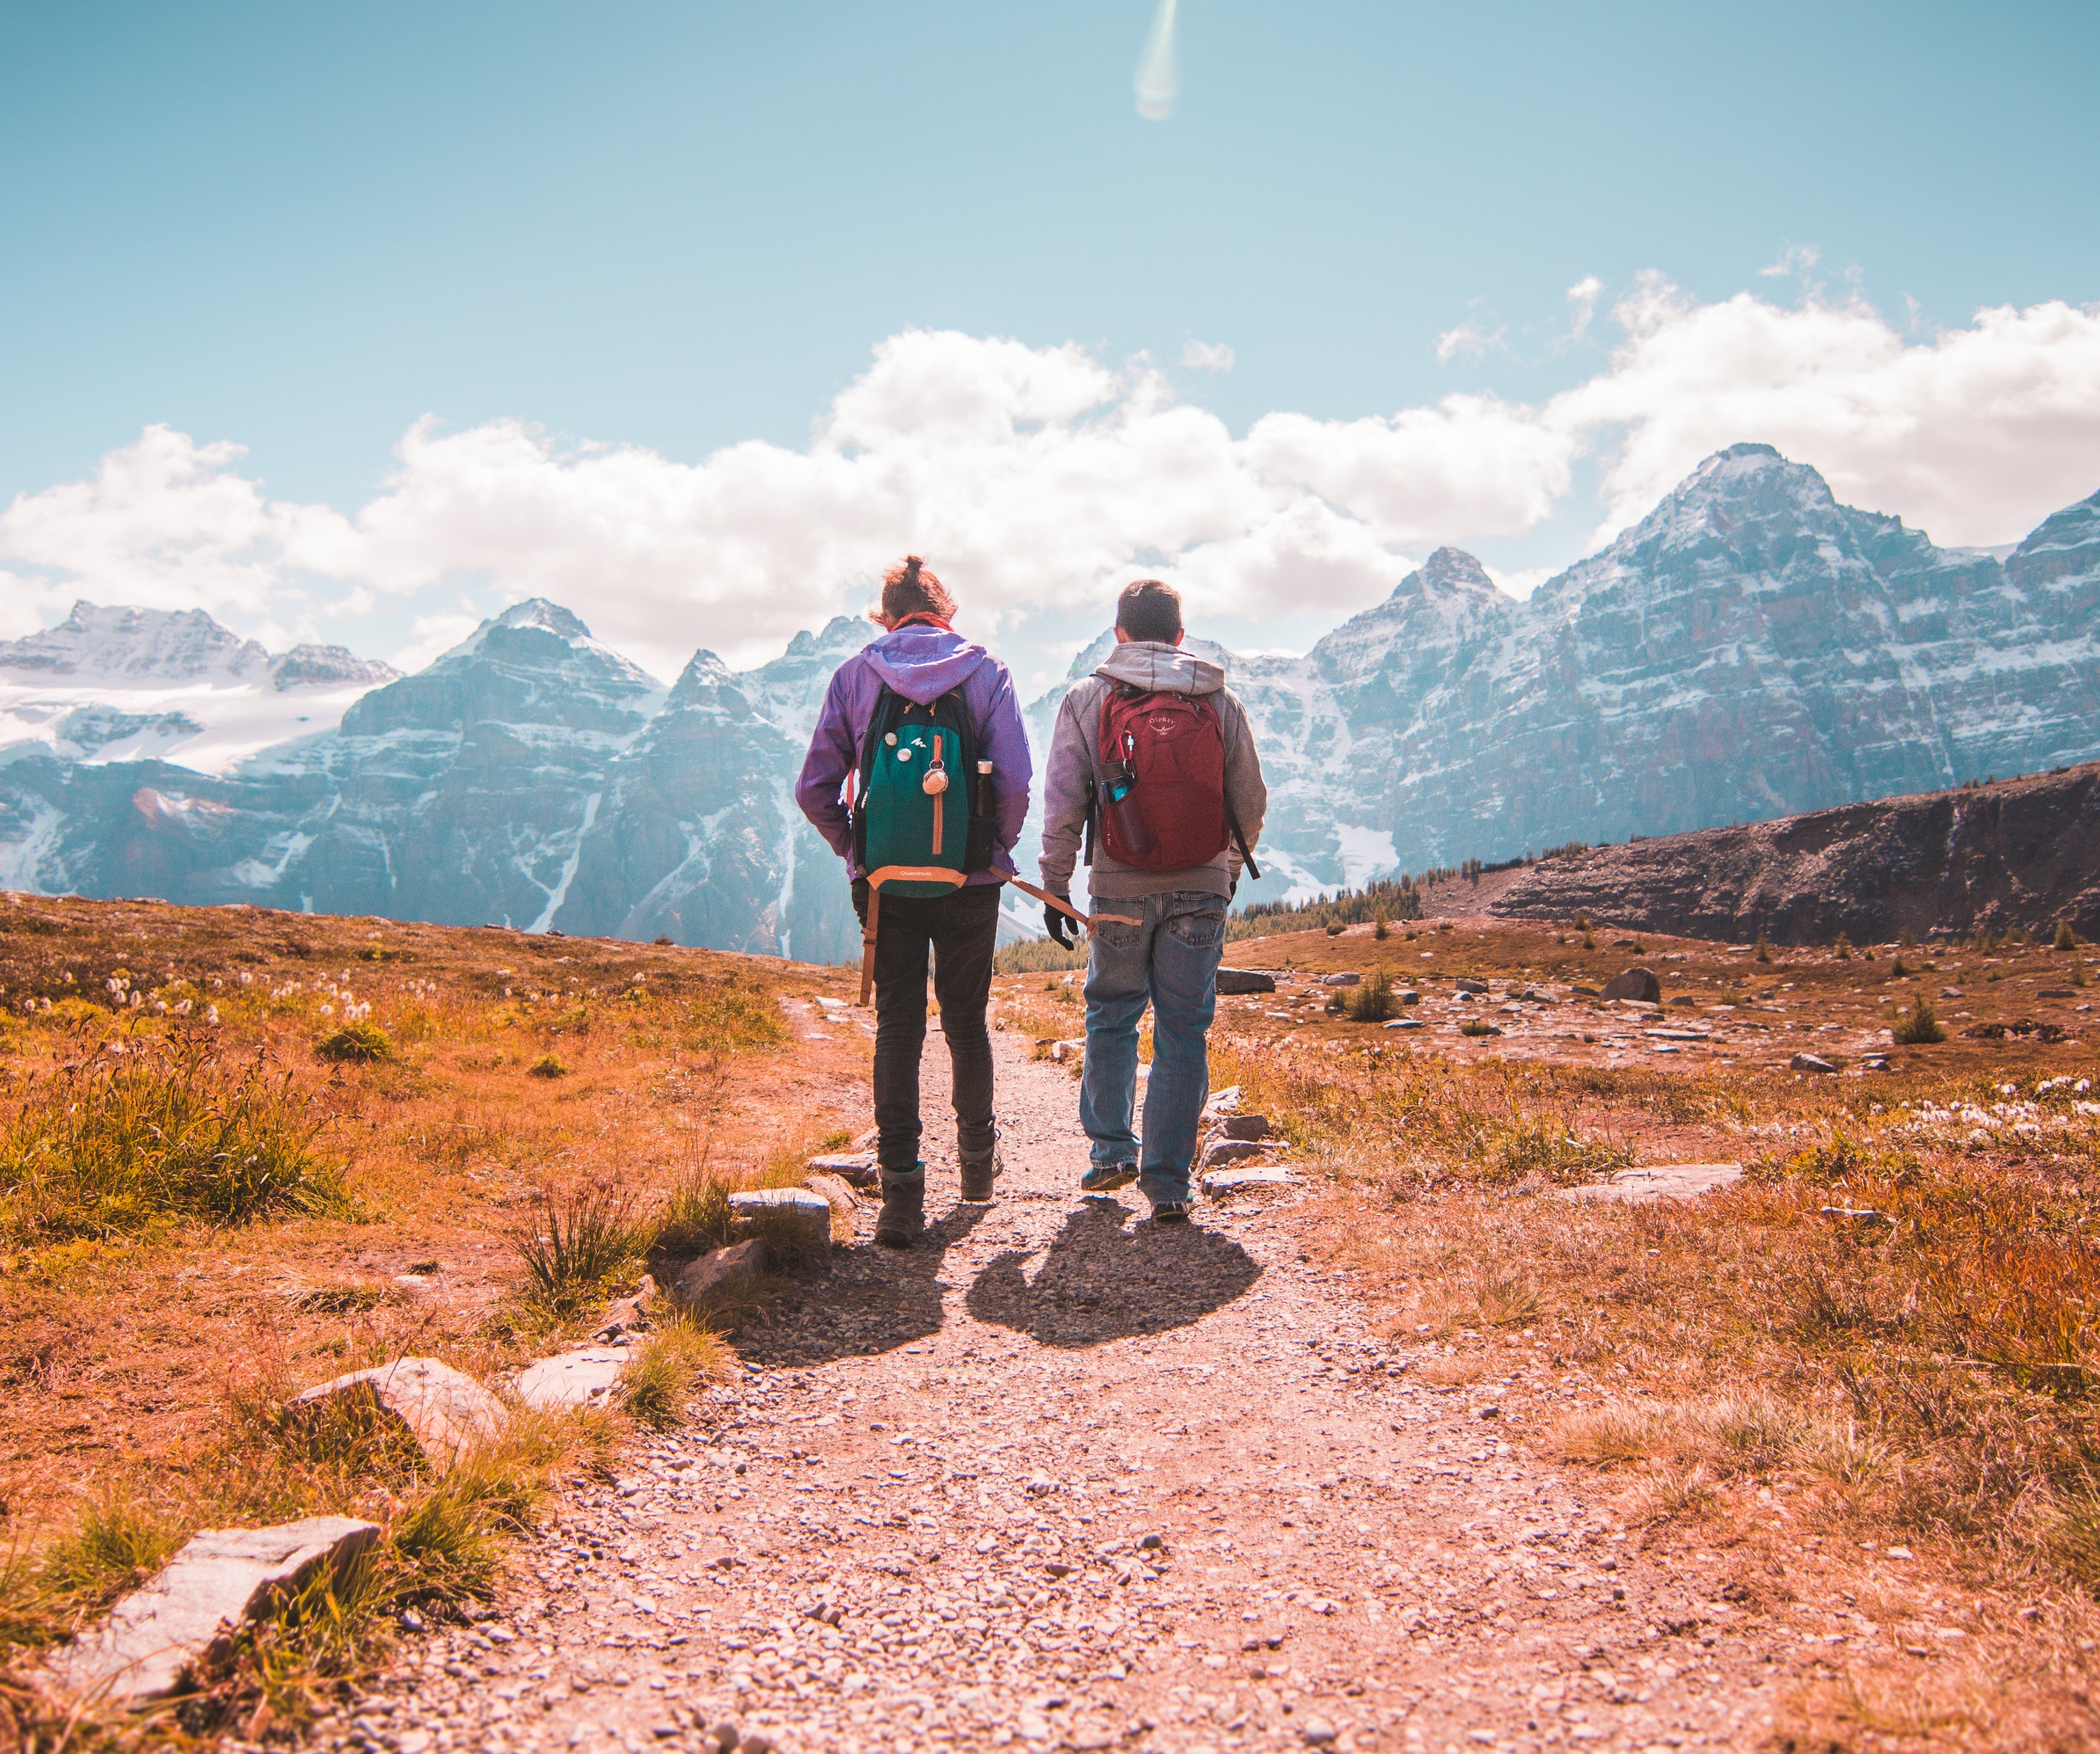 Two men hiking in mountains